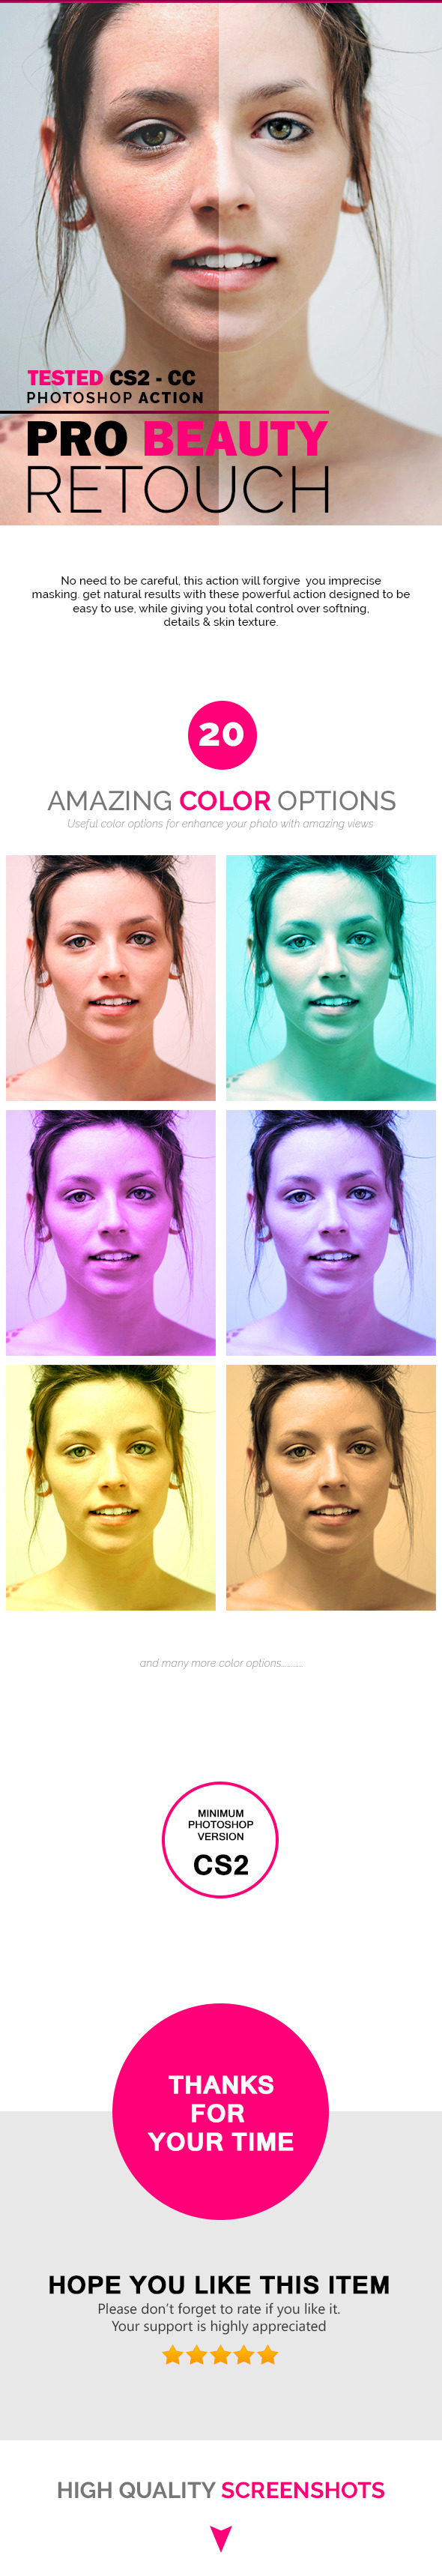 GraphicRiver Pro Beauty Retouch PHOTOSHOP ACTION 11303319